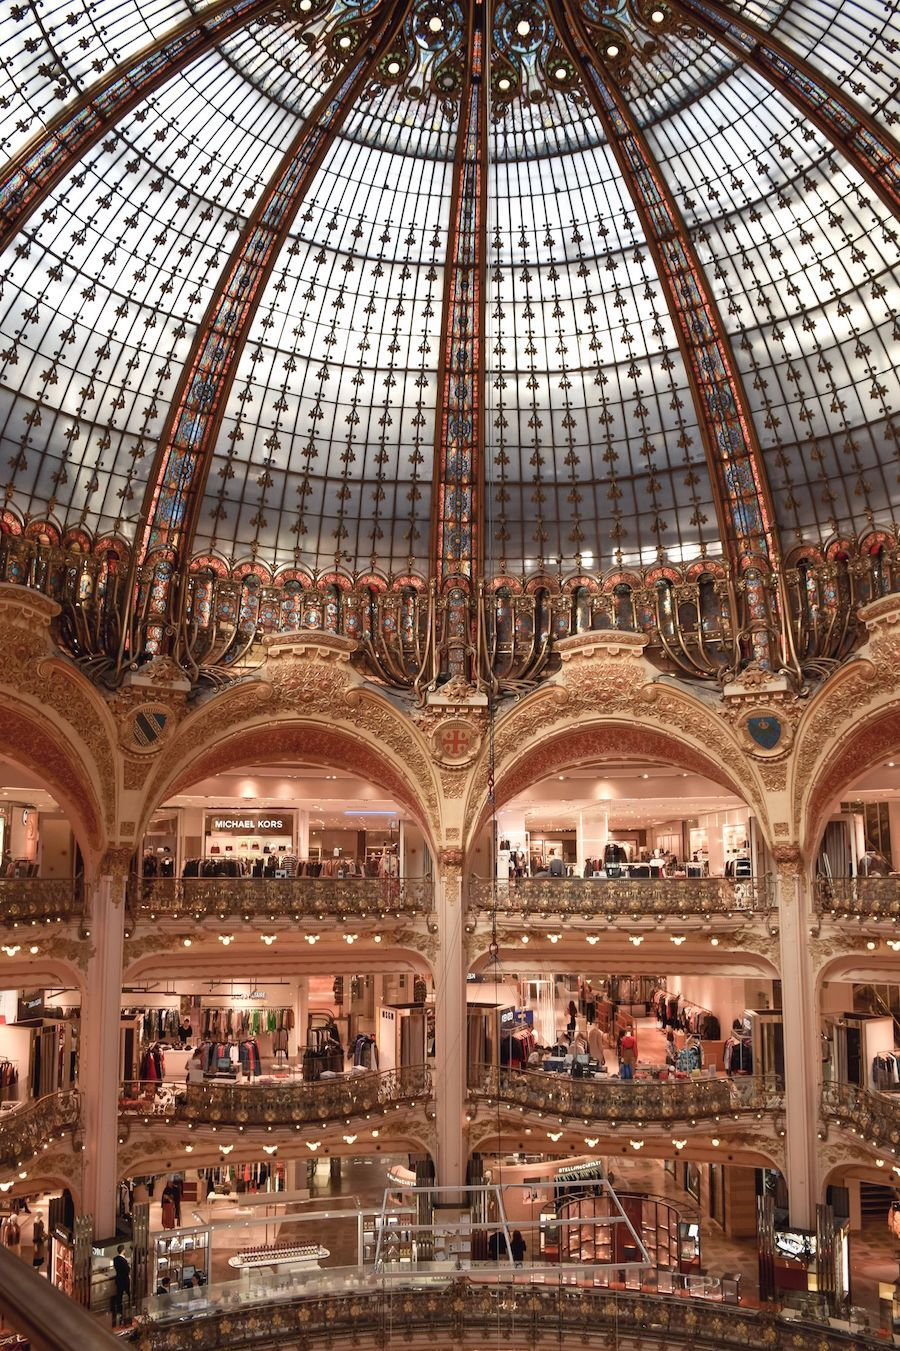 Galeries Lafayette Bonnes Adresses Paris To Celebrate Bastille Day I Have Rounded Up My Current Favourite Design Orientated Pla In 2020 Paris Travel Paris Travel